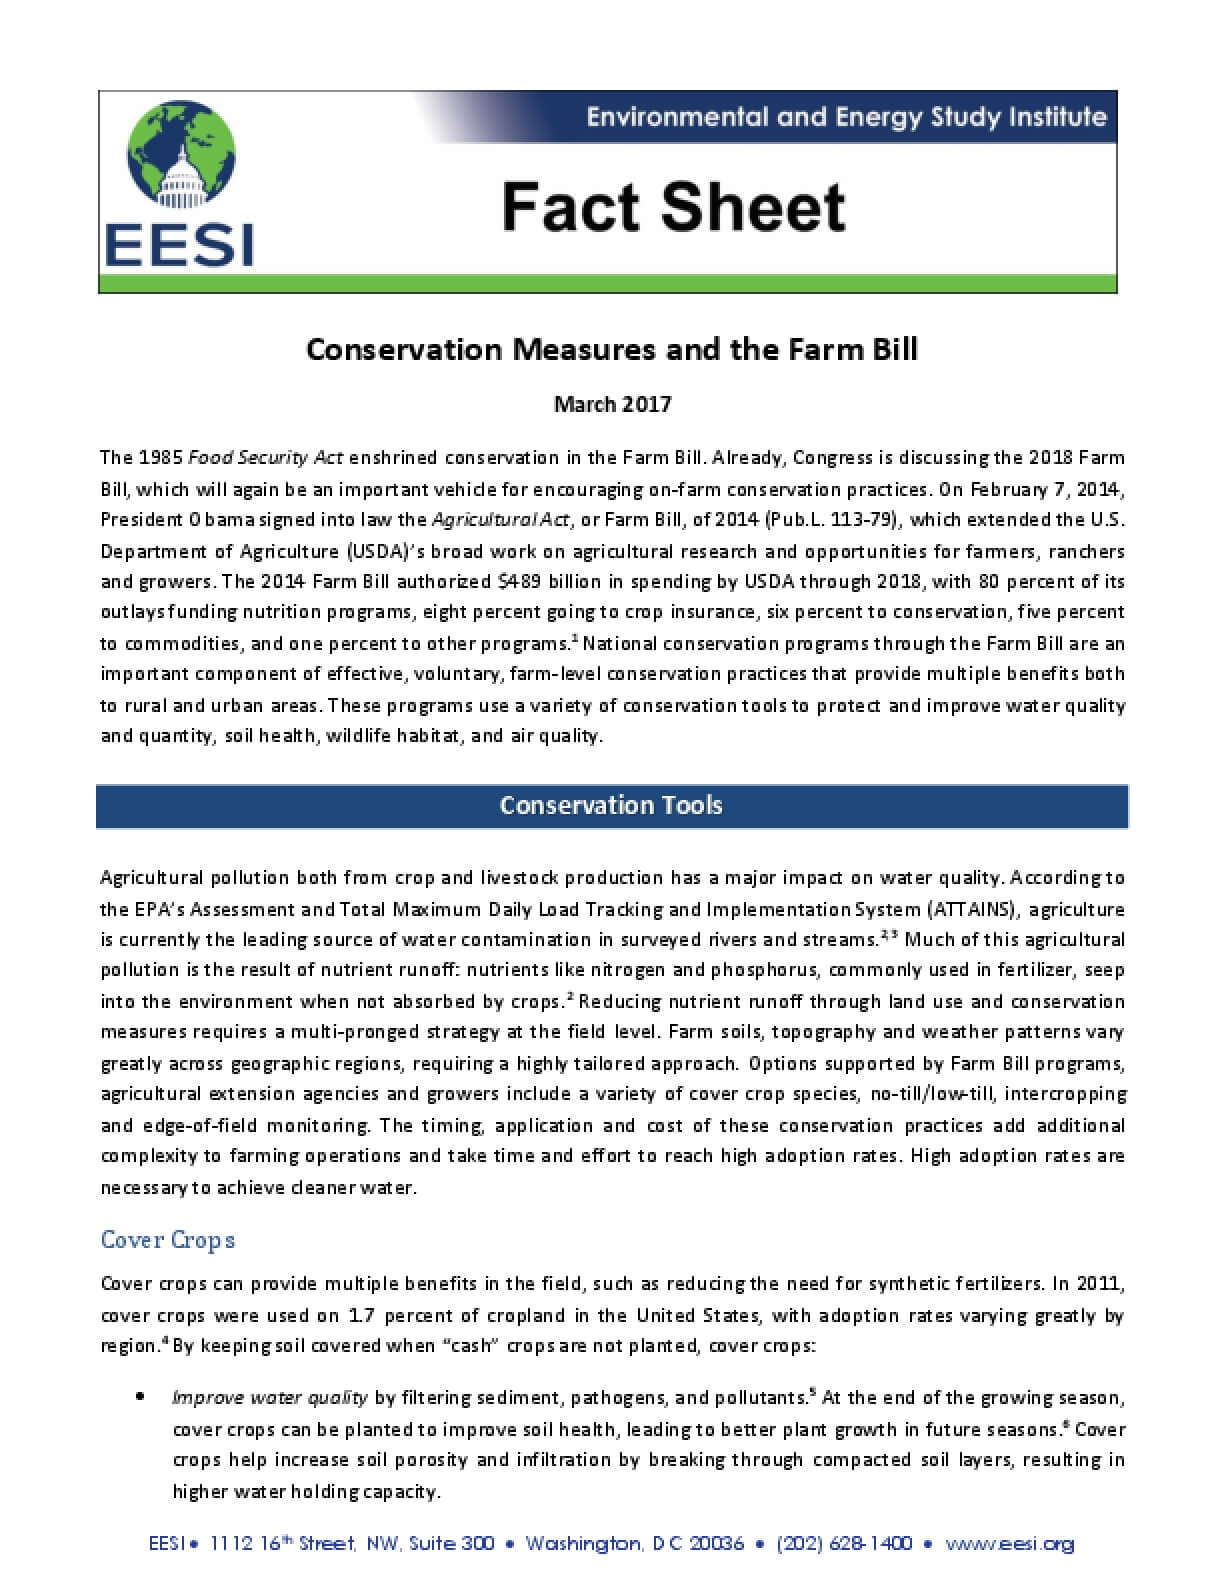 Fact Sheet: Conservation Measures and the Farm Bill